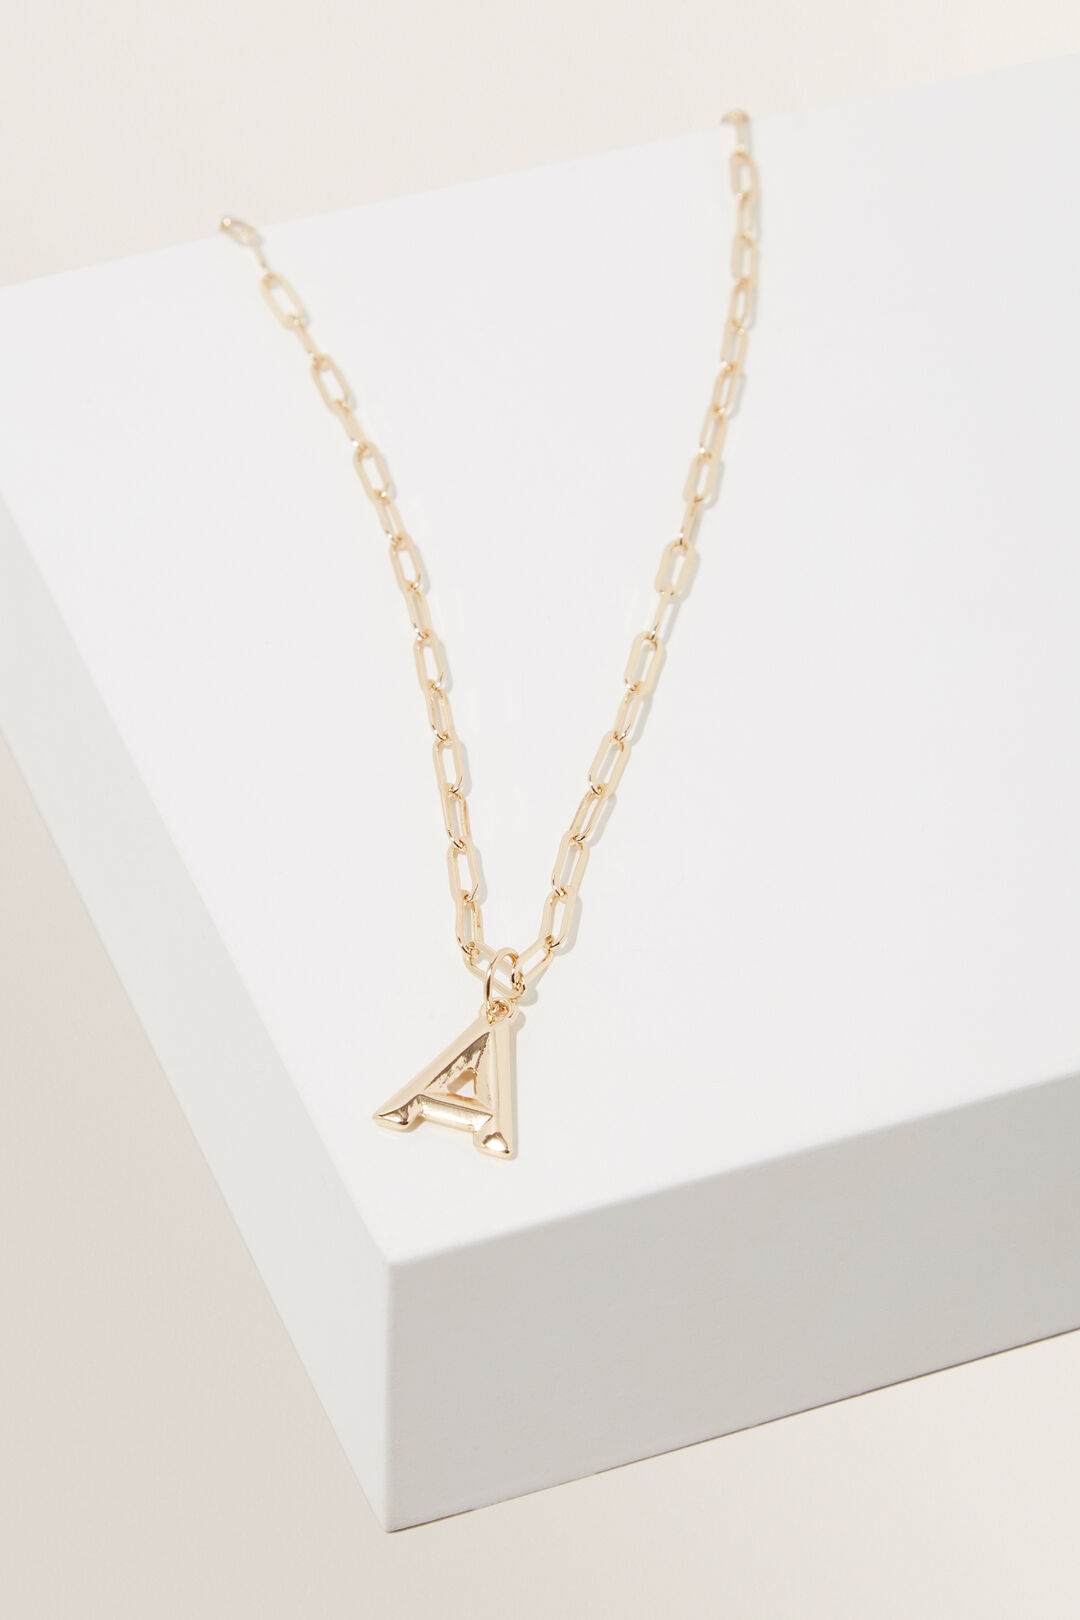 Initial  Chain  Necklace  A  hi-res